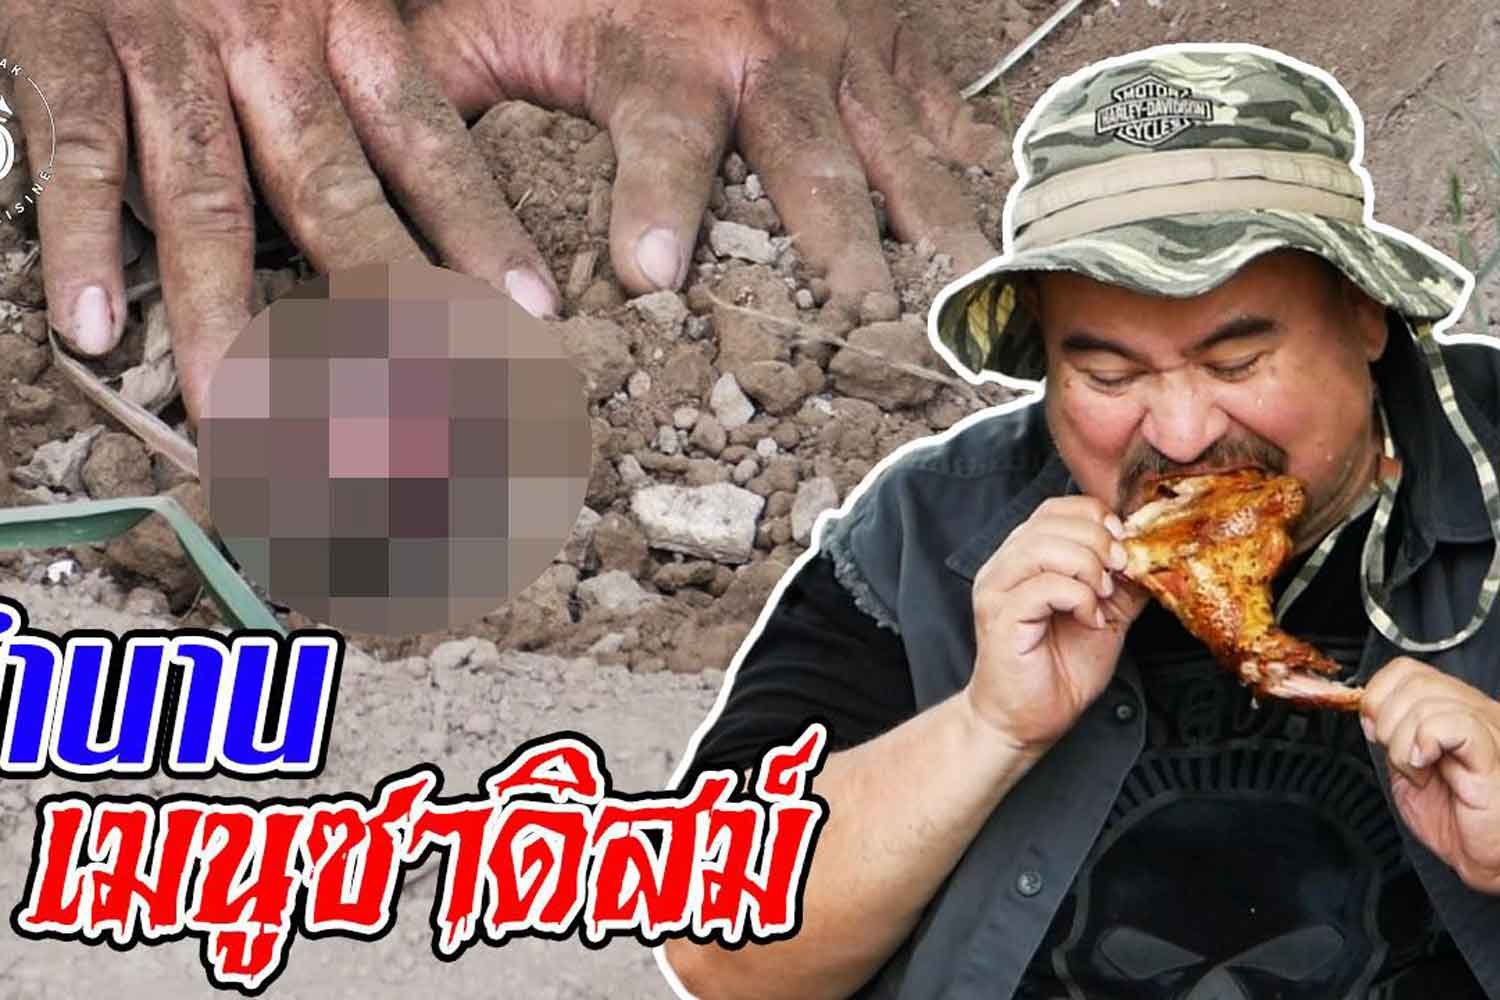 A picture of Sahasawat Chobchingchai eating chicken was posted on his Facebook page, Mom Tanaddak, on Monday with the message that he had removed the controversial clip of the buried chicken dish.